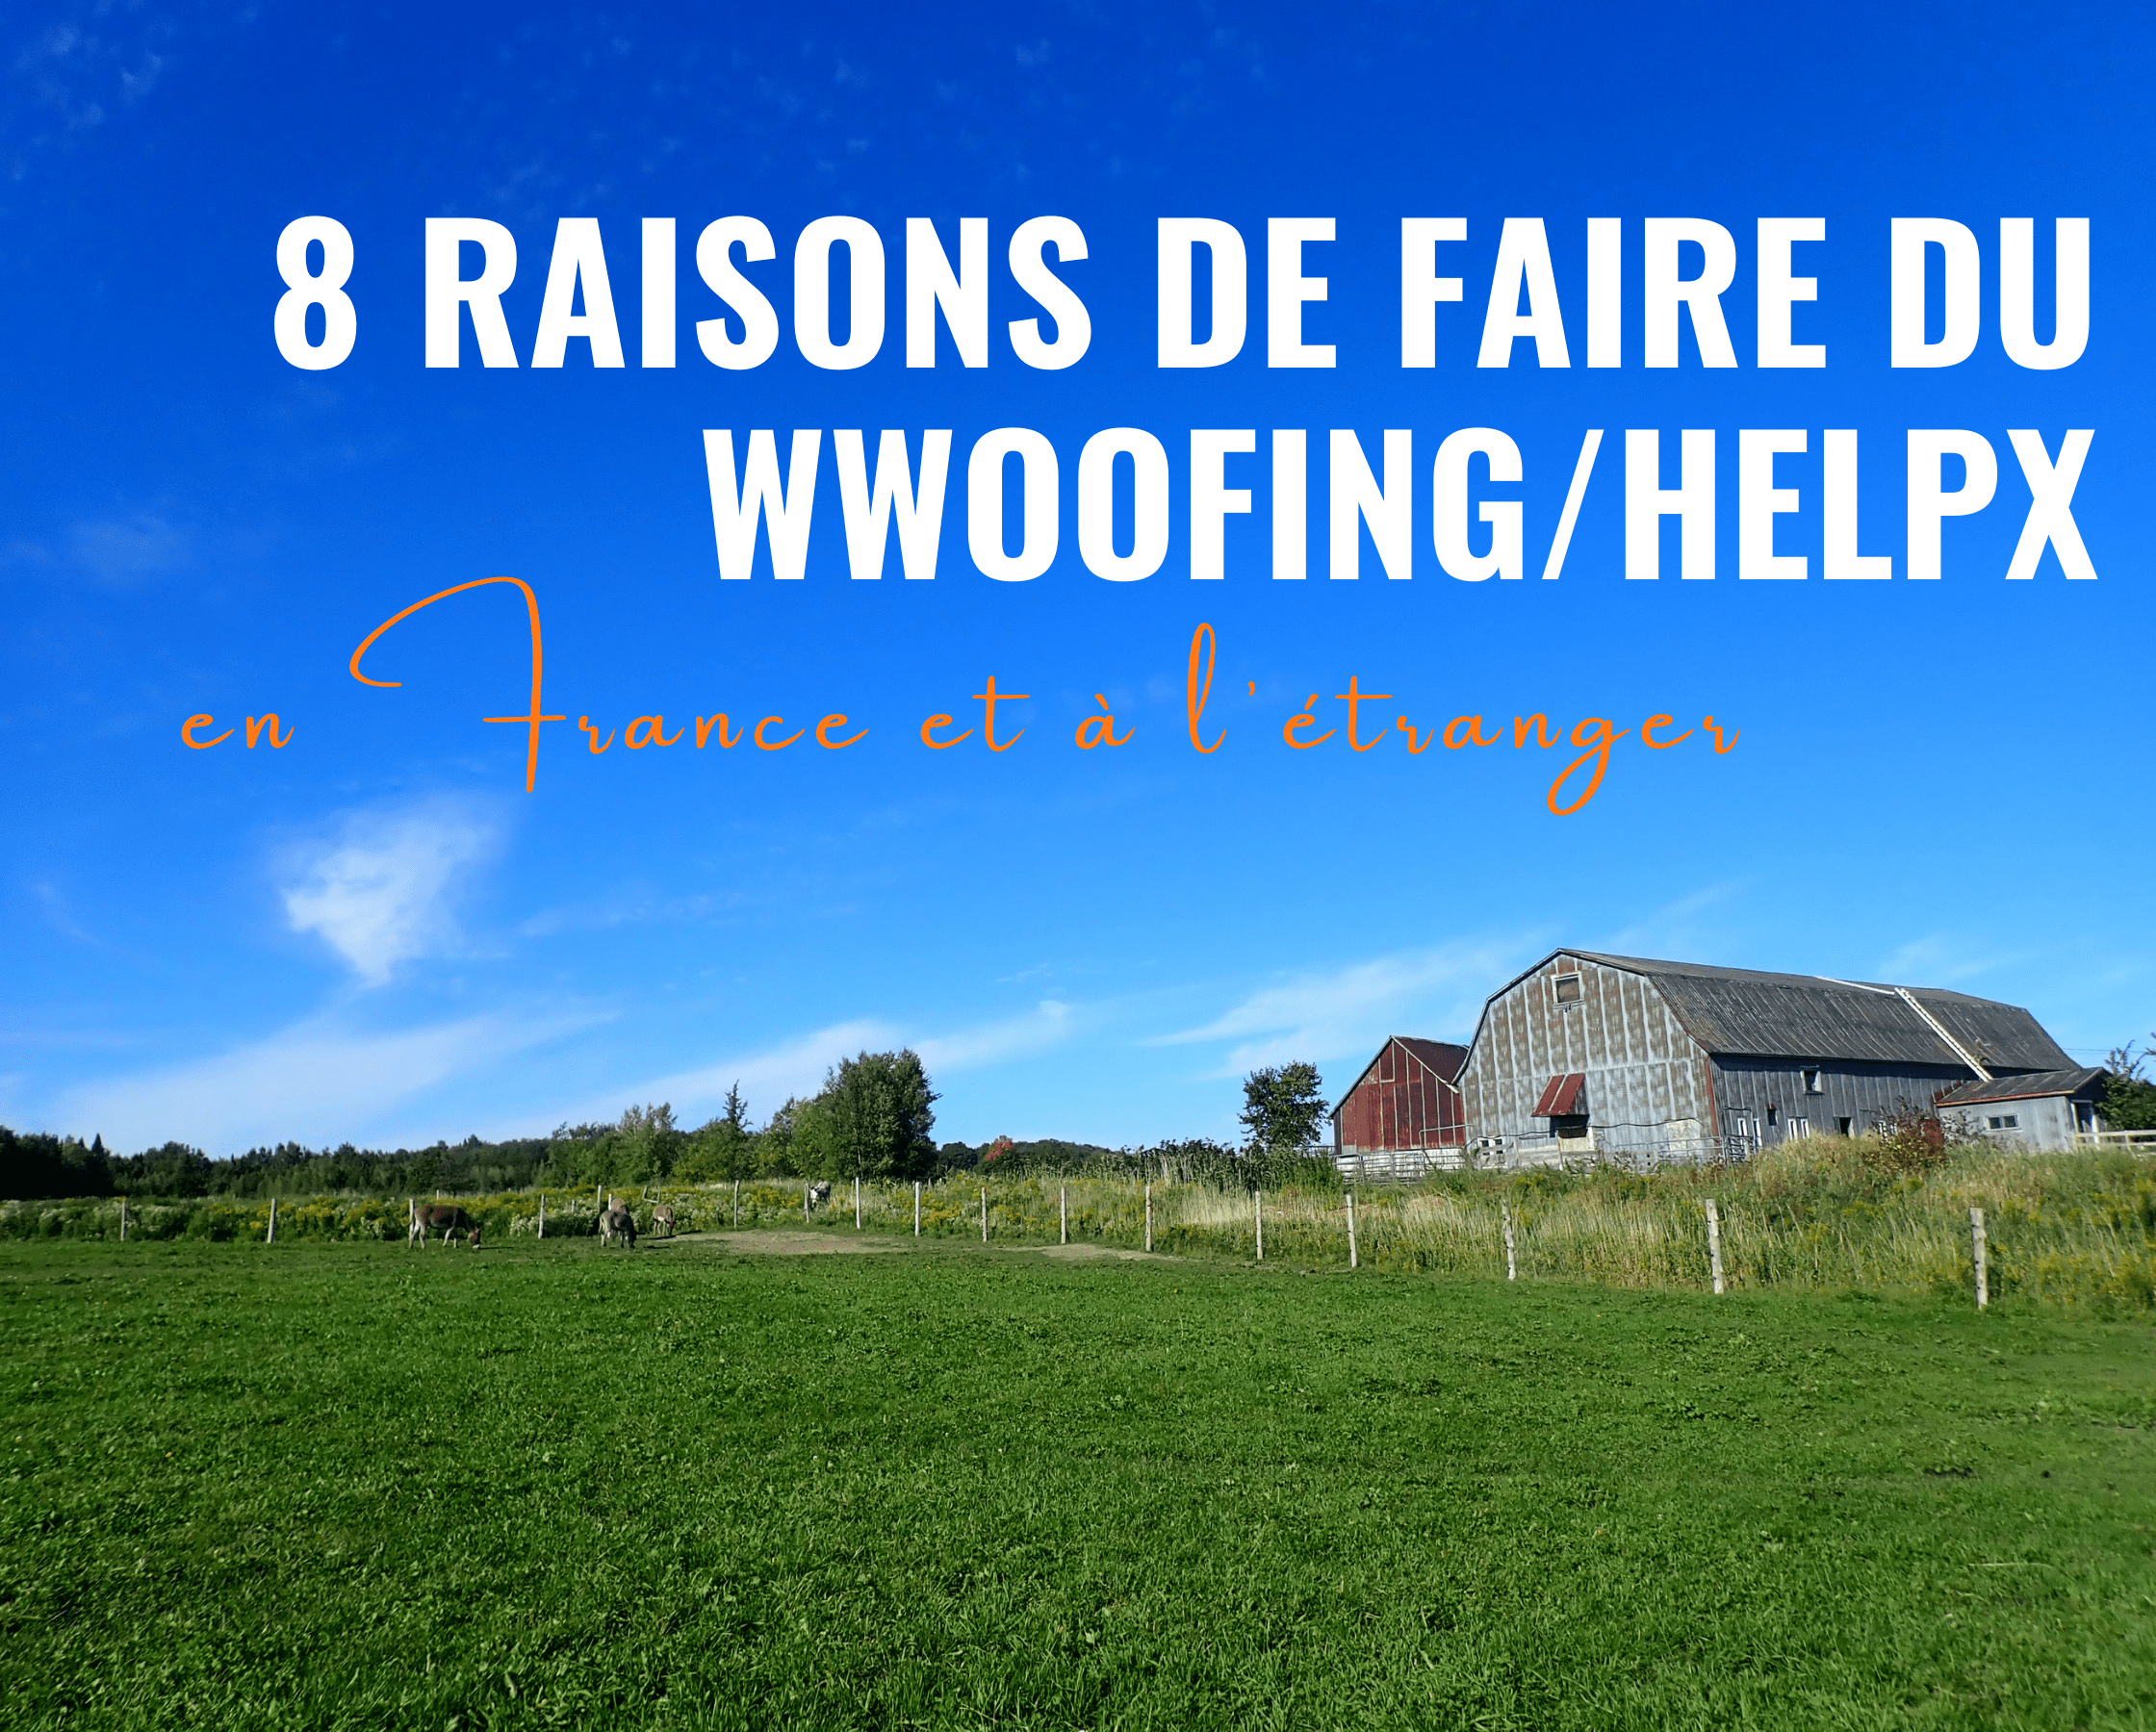 8 raisons de faire du wwoofing ou du HelpX